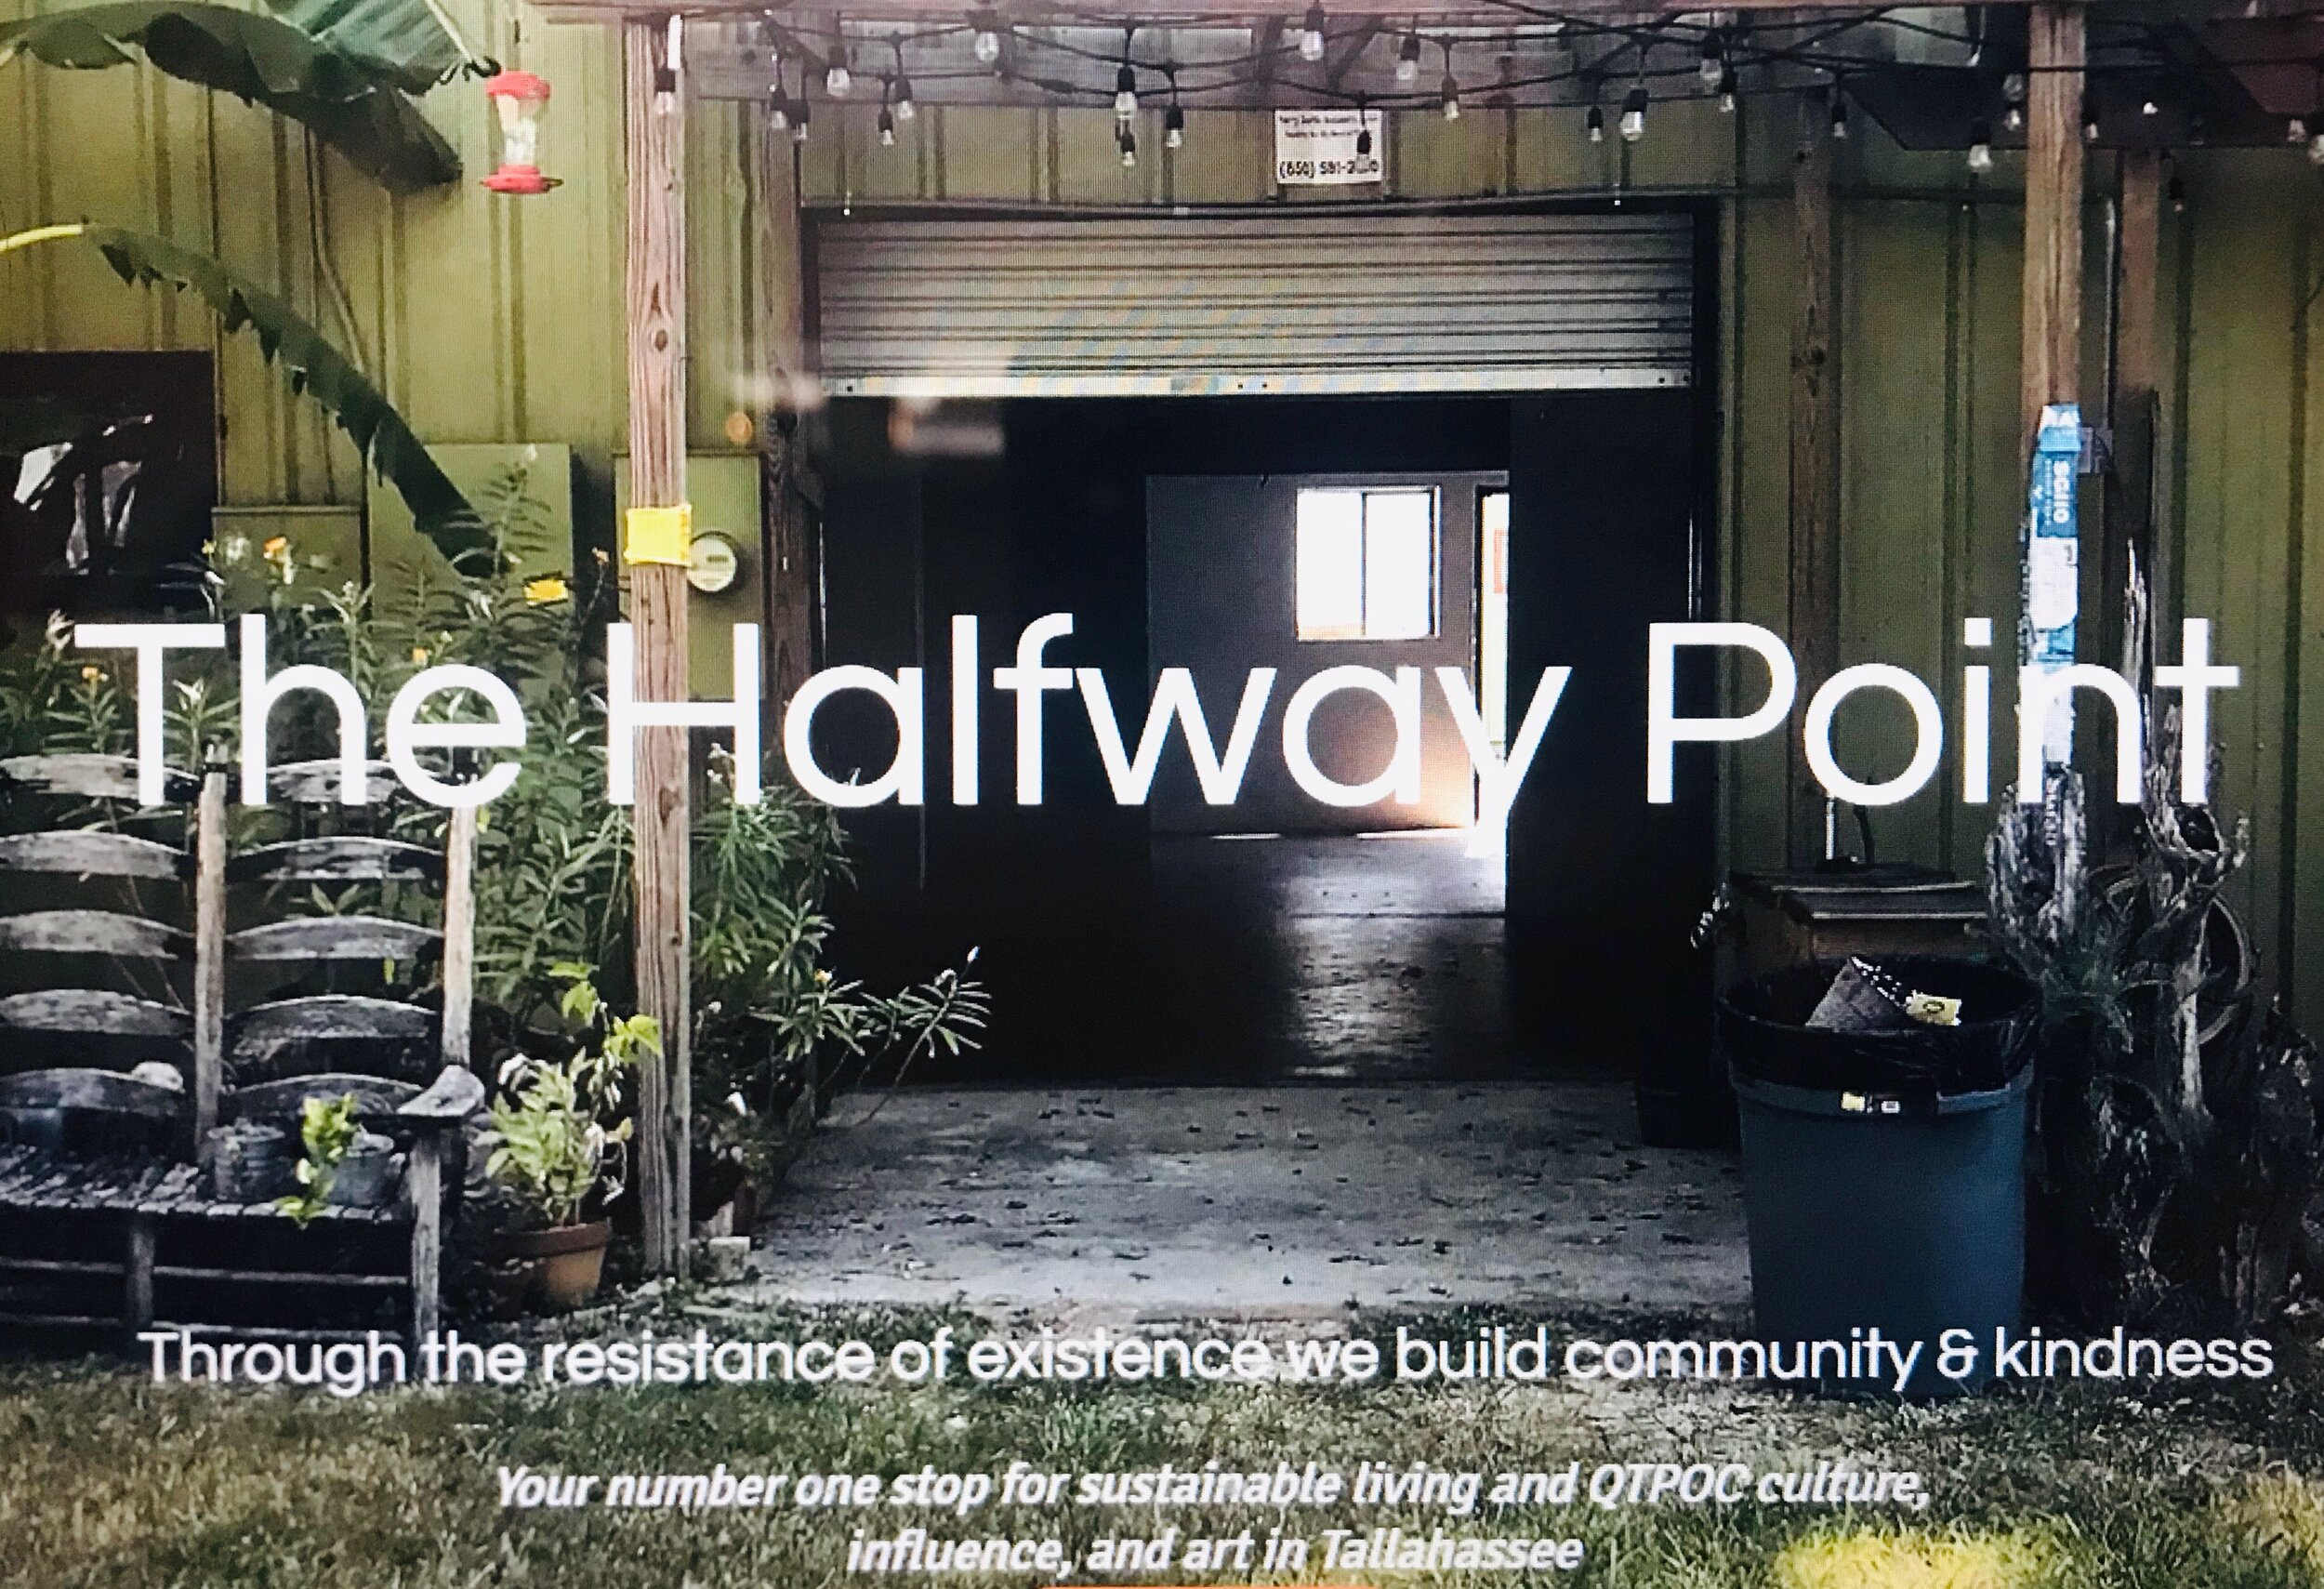 The Halfway Point - CATEGORY: Sustainable living & QTPOC art hubADDRESS: 694-2 Industrial DriveCONTACT: (912) 257-3711HOURS: TUES - SAT from 11am-6pmABOUT: The Halfway Point is both a retail store and art hub with a business foundation dedicated to reducing our global carbon emissions by 2050 (limiting the global temperature rise to 1.5' Celsius) and rooted in social justice. The Halfway Point offers sustainably sourced & manufactured household goods that allow us to reduce single-use waste in our everyday lives. Not only are 95% of our production materials sourced within 100mi of our beloved city, we also divert hundreds of pounds of unnecessary waste otherwise headed to landfills.If you've been searching for ways you can directly benefit our environment (aside from planting trees), we can offer you everyday, affordable choices to combat a culture of waste. In addition to our manufactured goods & artwork, we also provide tailoring services, workshops and community events aimed to continue to nurture the green-living that Tallahassee's community has spent decades cultivating. Occasionally, our retail gallery & events will be lead by inter-disciplinary QTPOC experts in their fields in order to provide opportunities to share diverse stories & experiences and support the mission of Restorative Justice in our city. Every Friday, including First Friday, we offer a 10% discount for all customers that take public transportation or another mode of green travel on their trip to Railroad Square Art District.